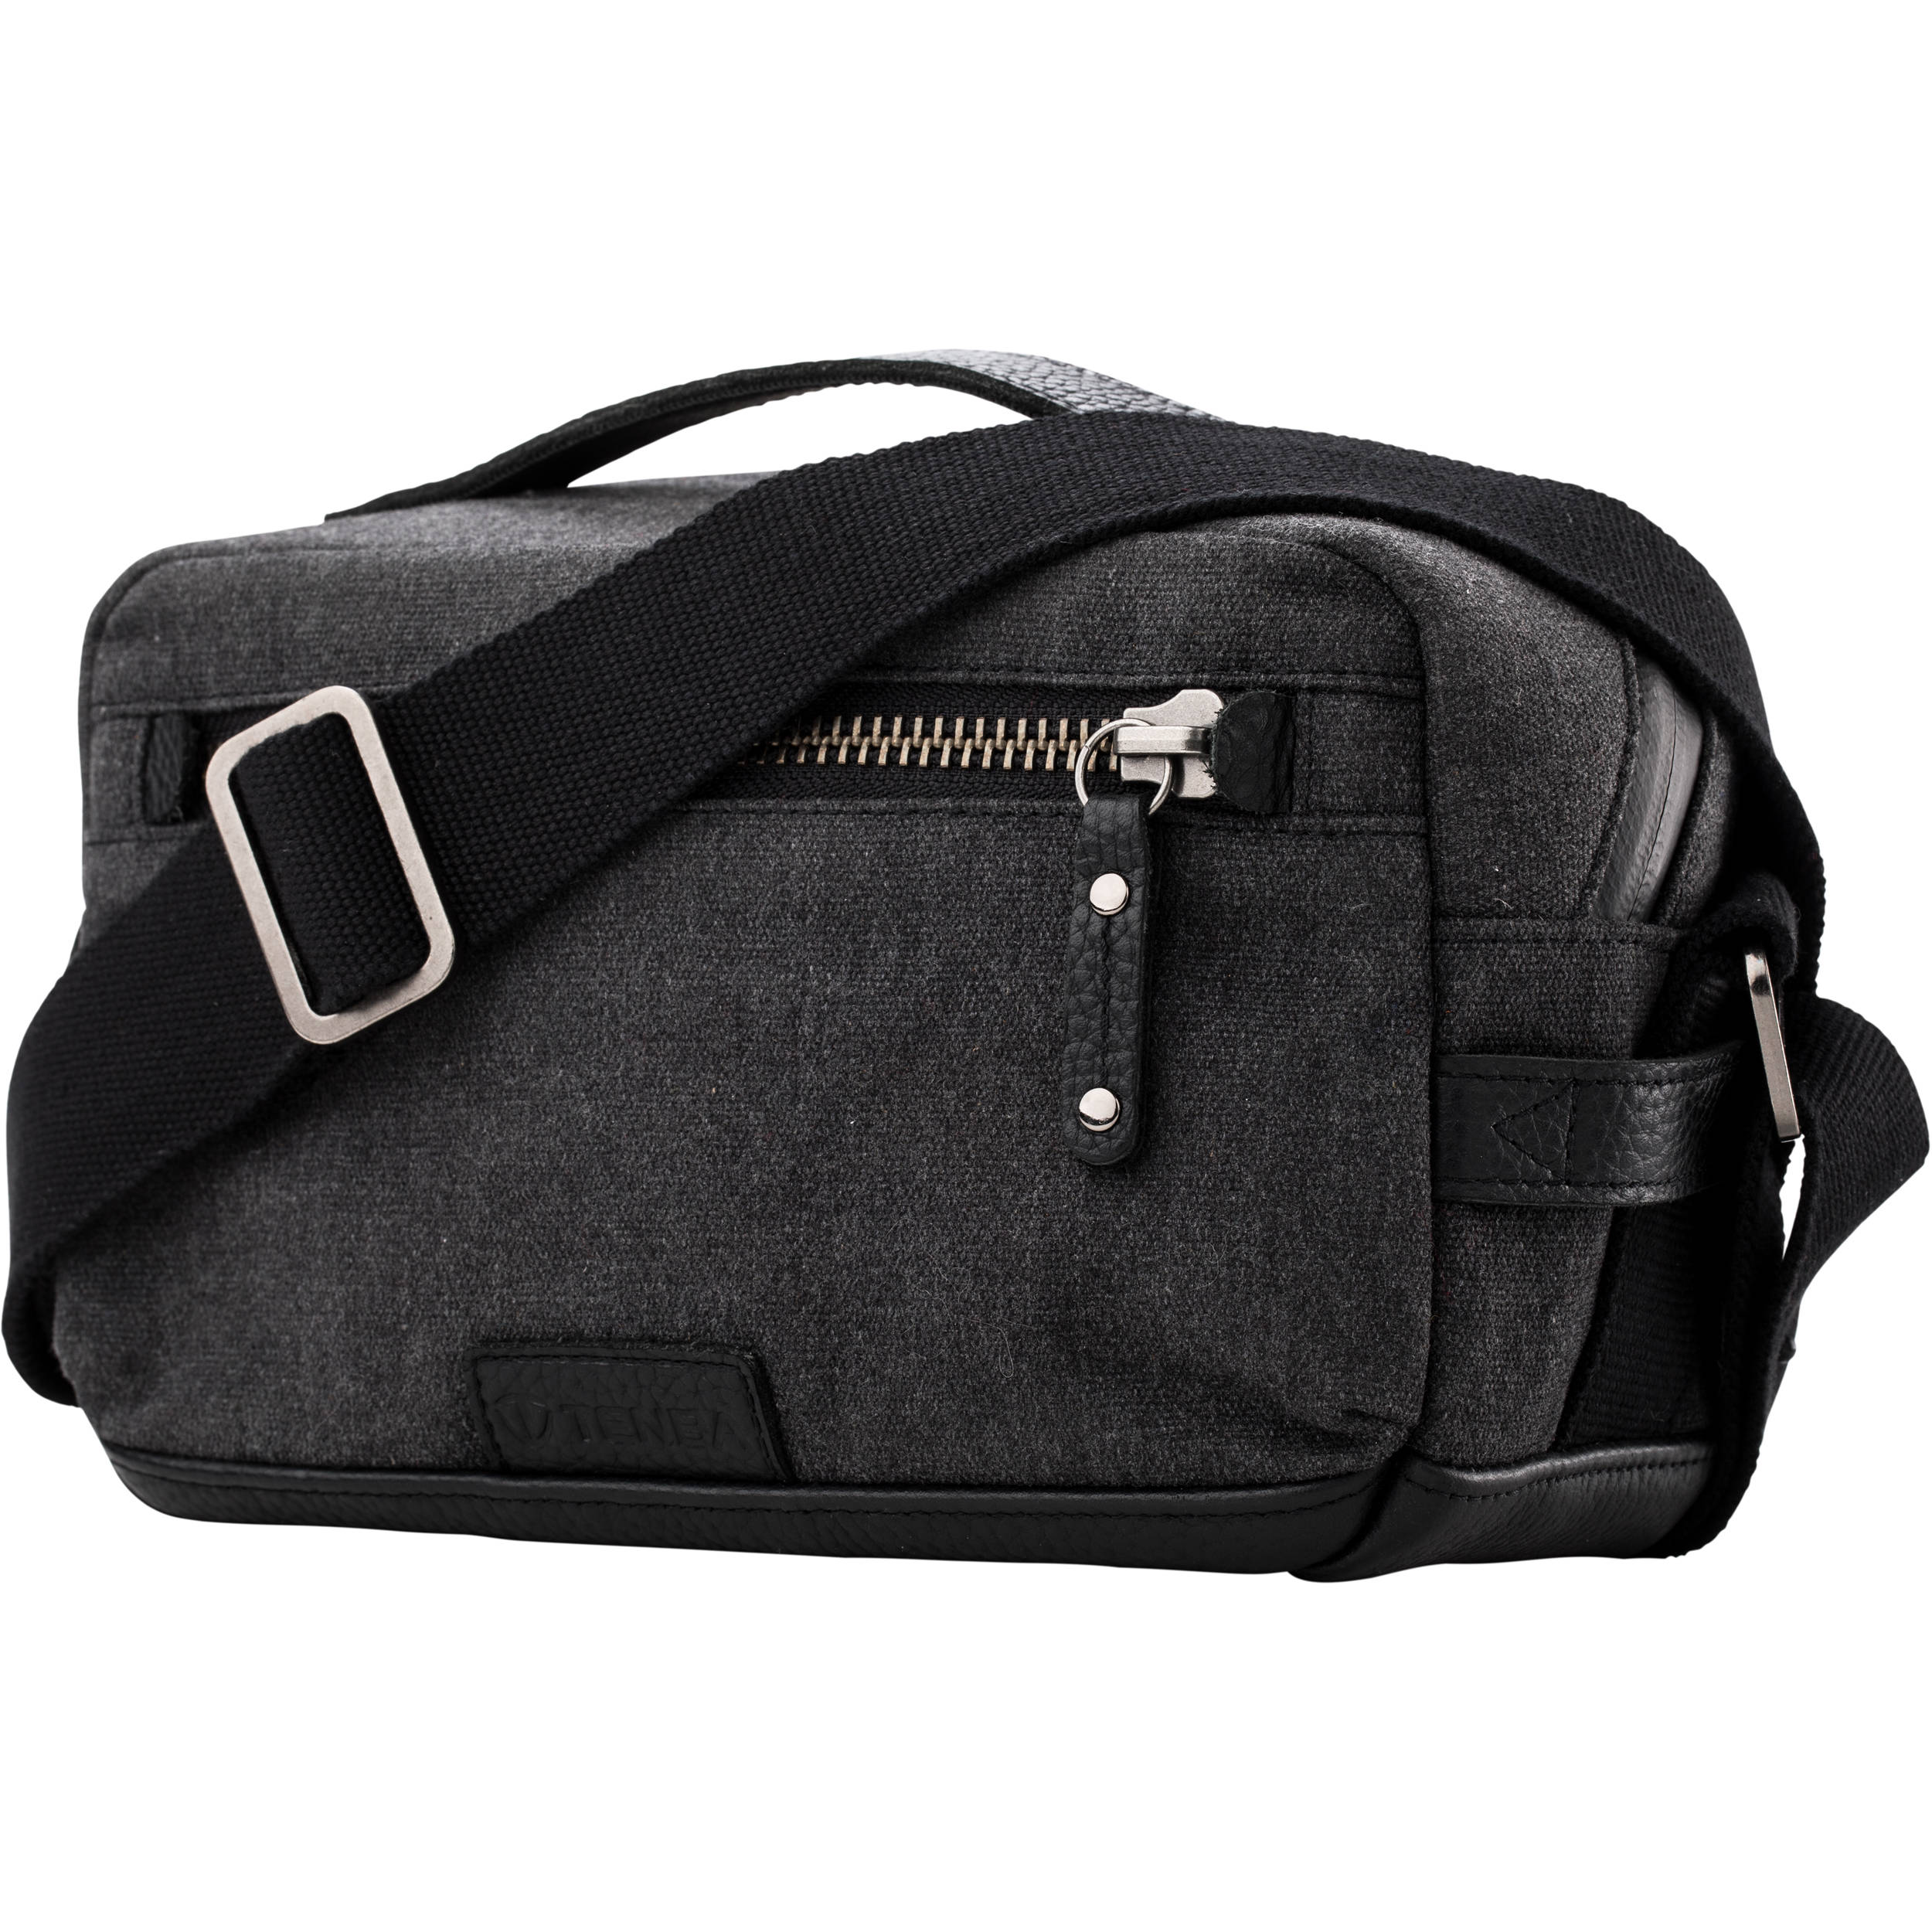 Tenba Cooper Luxury Canvas 6 Camera Bag With Leather Accents Gray